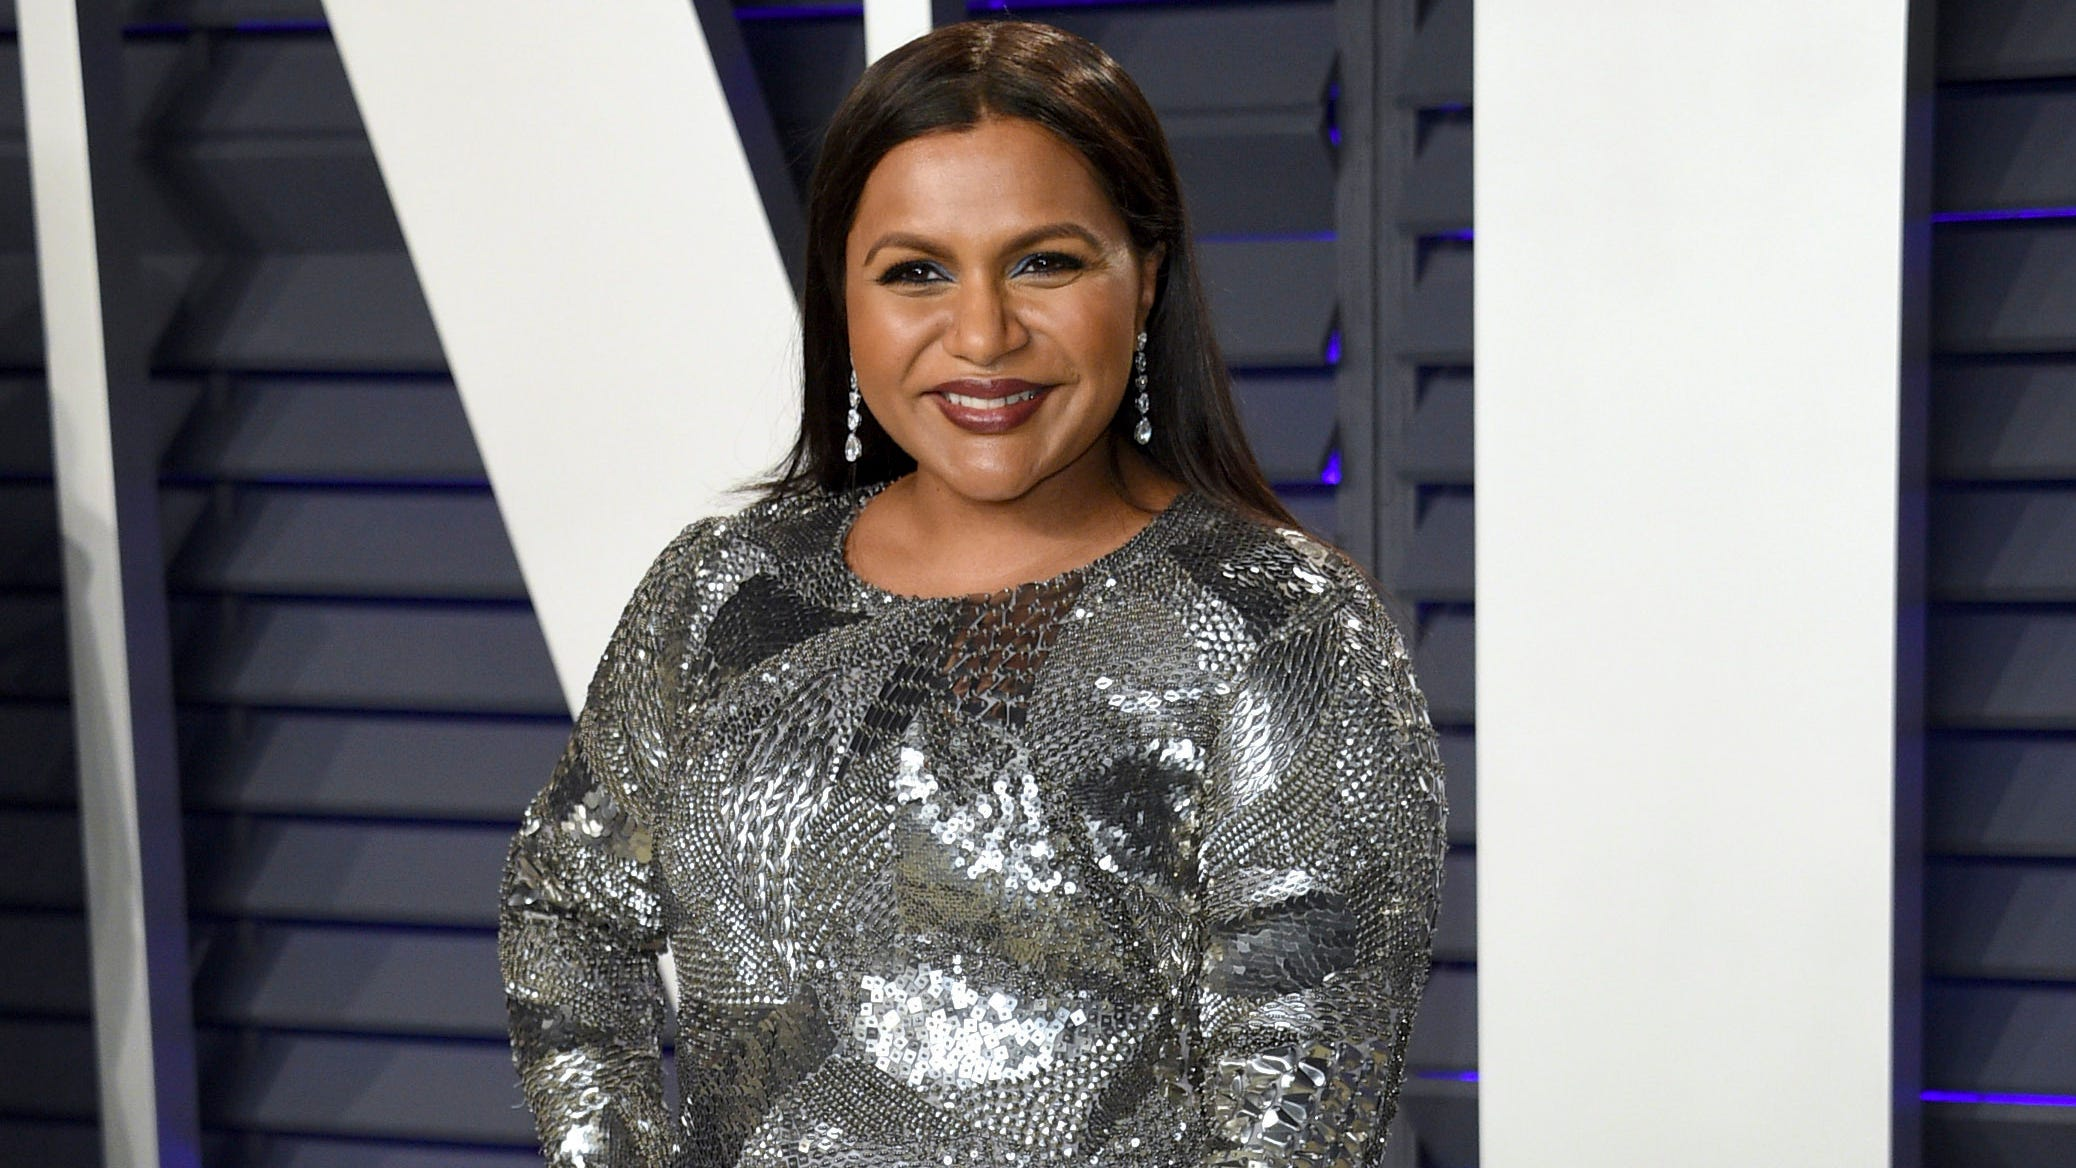 Mindy Kaling Book Summer 2020 Amazon Release Will Be Essay Collection